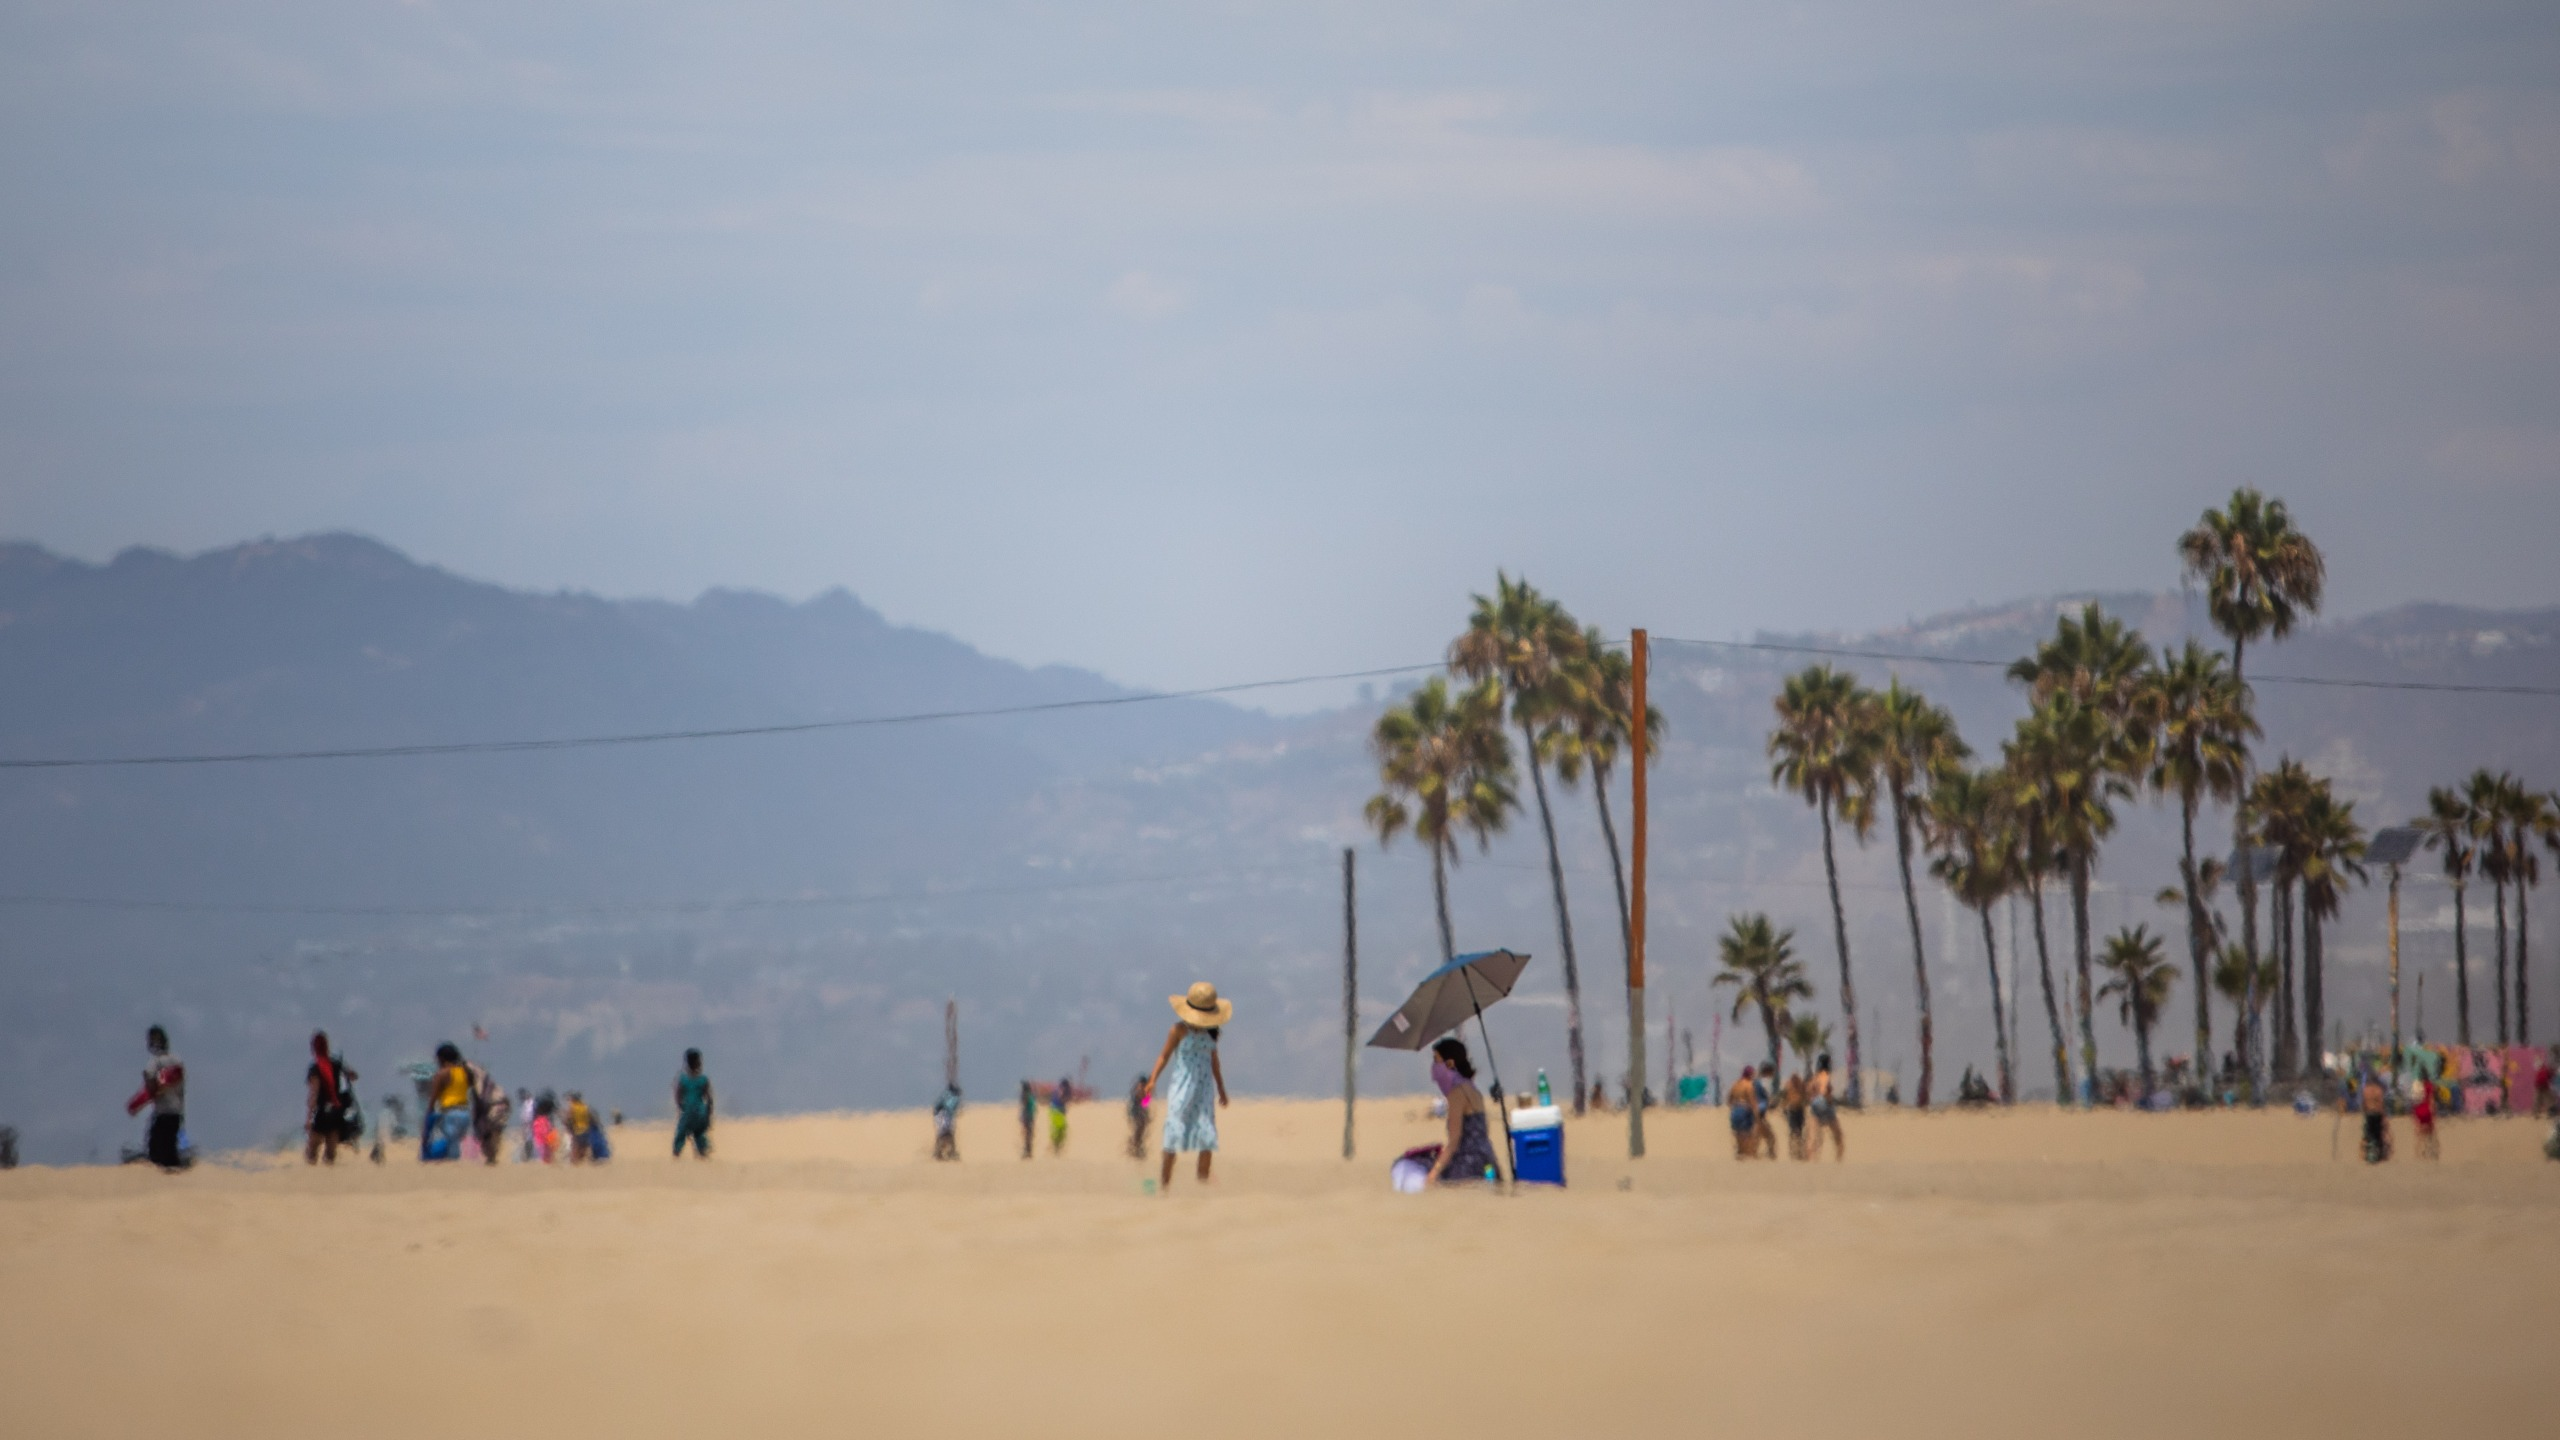 People enjoy the beach amid the severe heat wave in Venice, California on August 15, 2020. (Apu Gomes/AFP via Getty Images)People enjoy the beach amid the severe heat wave in Venice, California on August 15, 2020. (Apu Gomes/AFP via Getty Images)